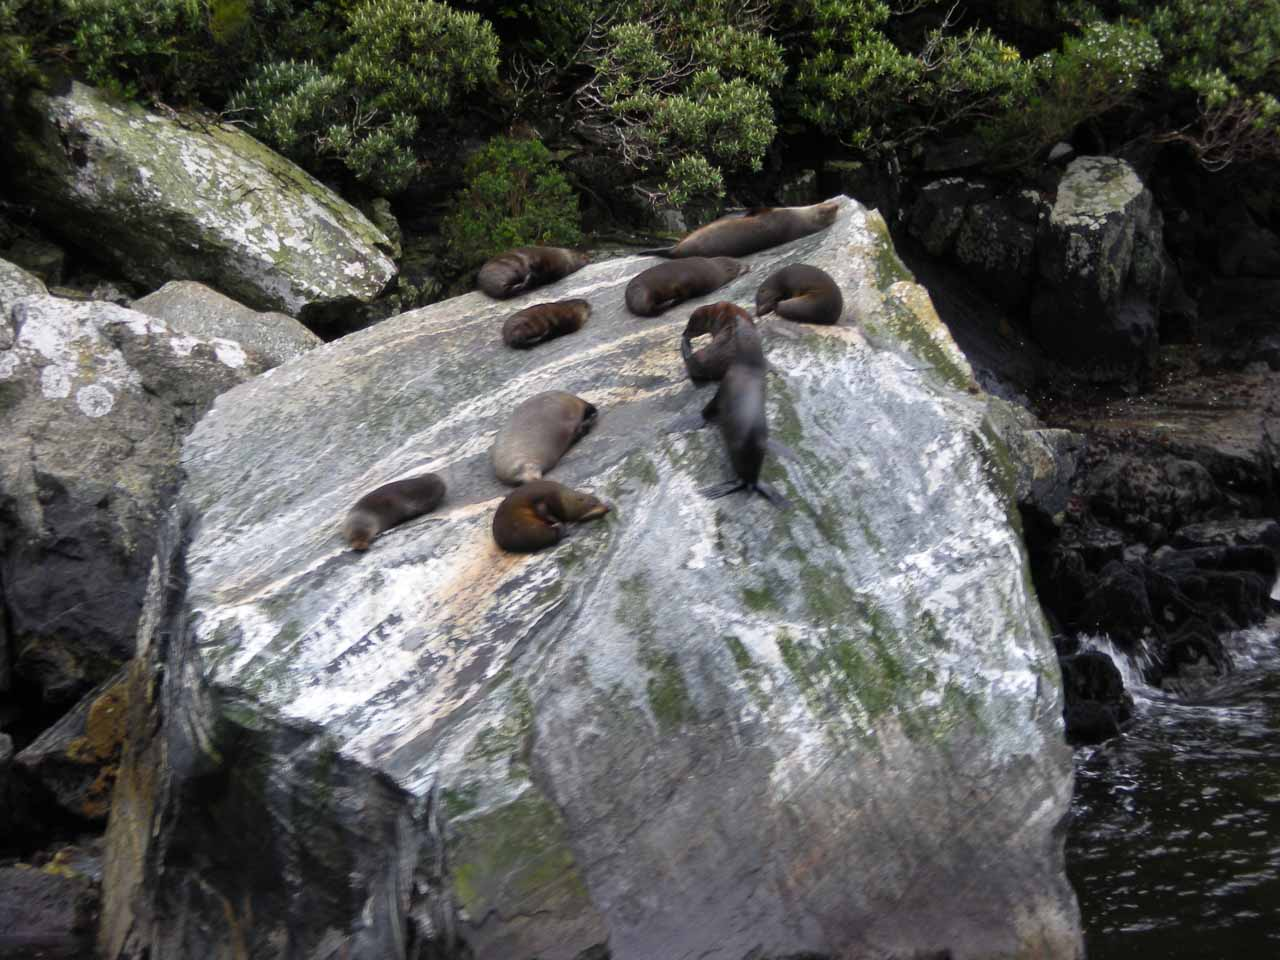 This time there were many more fur seals atop the rock during our 2009 cruise